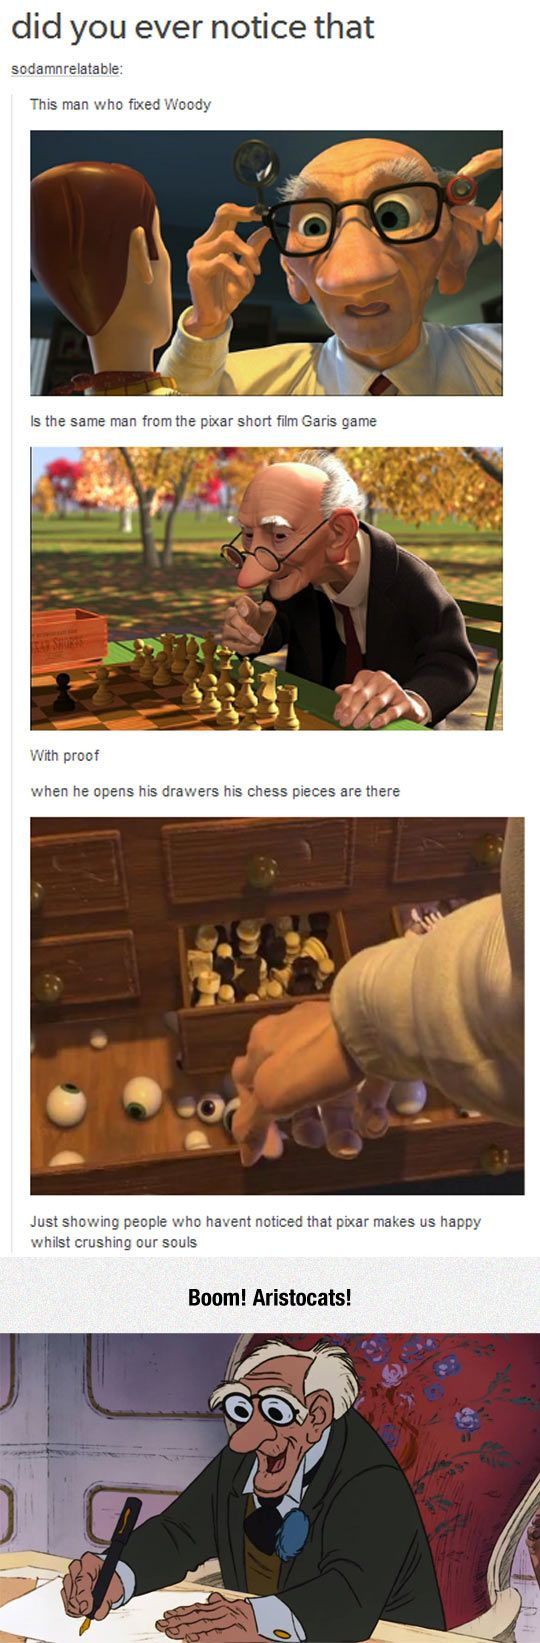 Disney/Pixar's Old Man